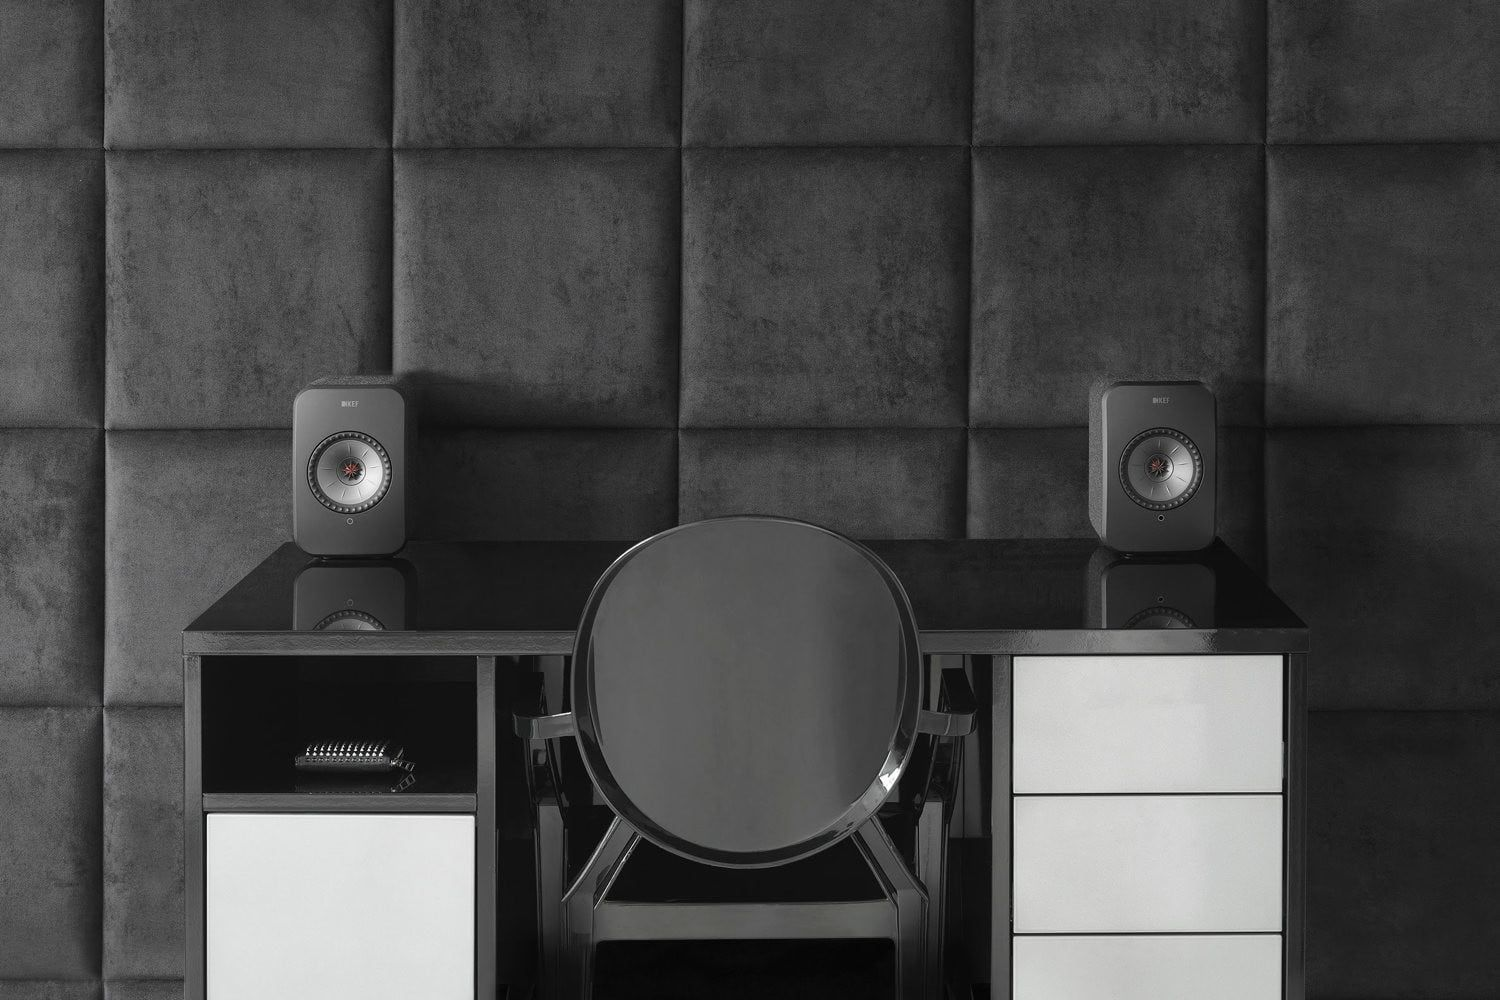 Kef Debuts 1 100 Lsx Wireless Speakers With Airplay 2